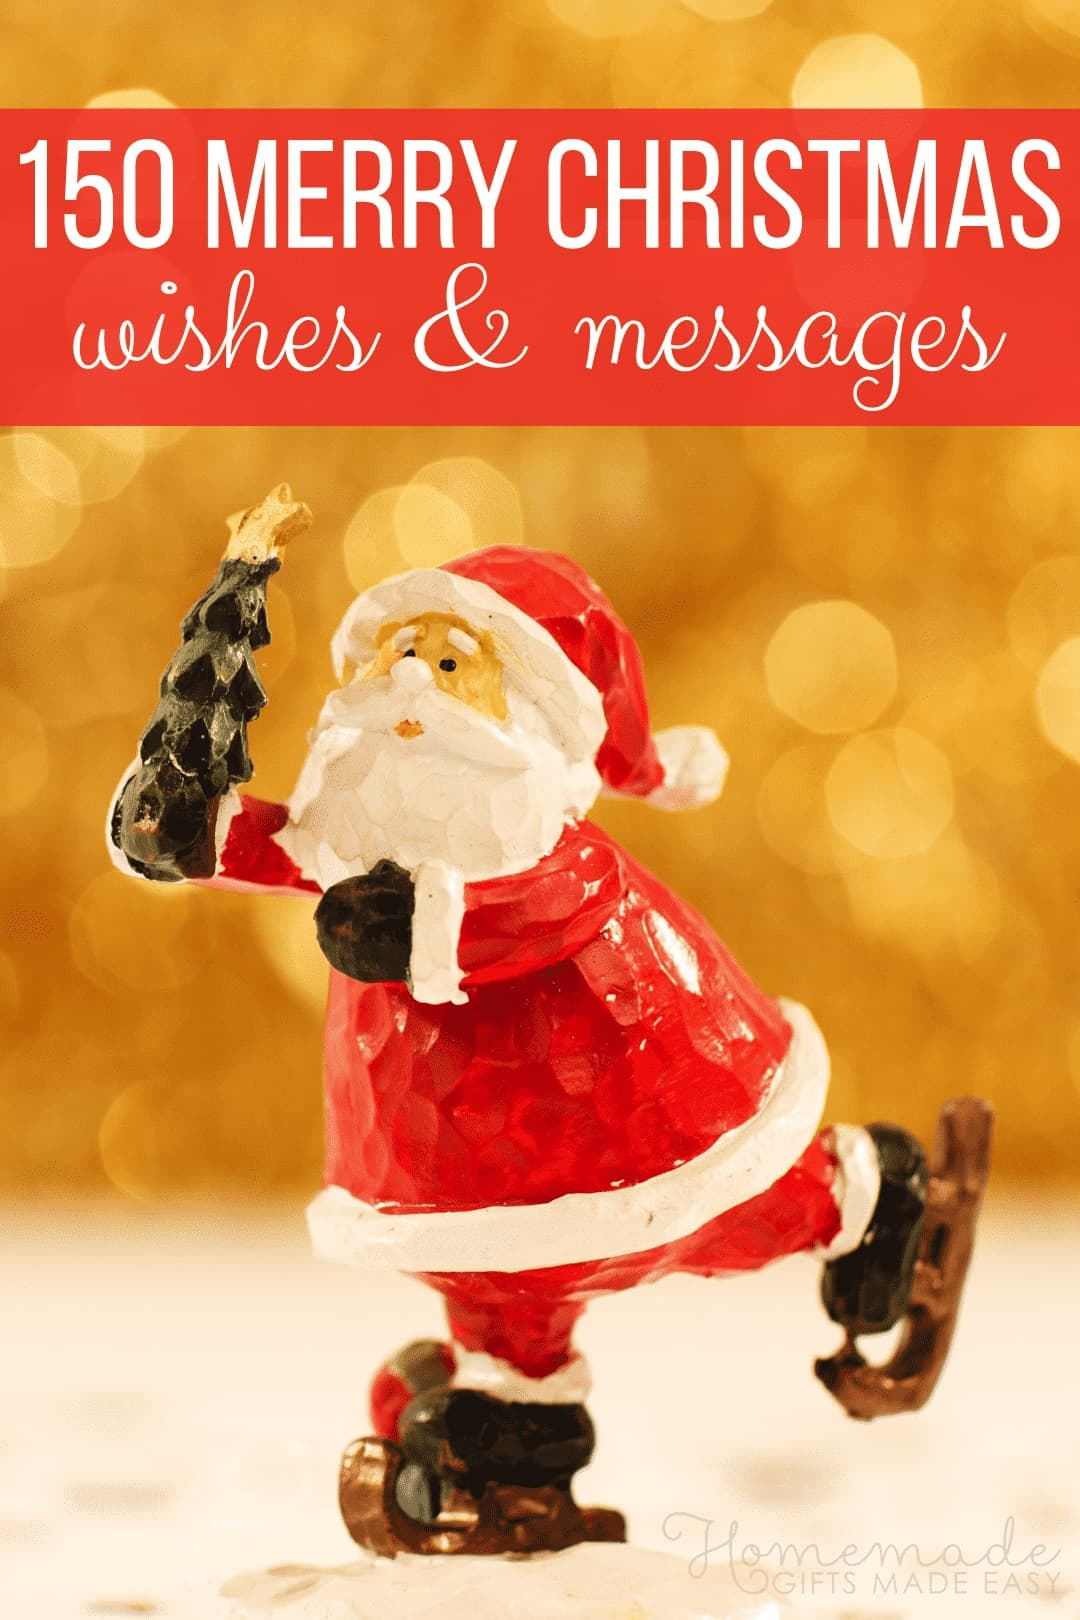 150 Best Merry Christmas wishes